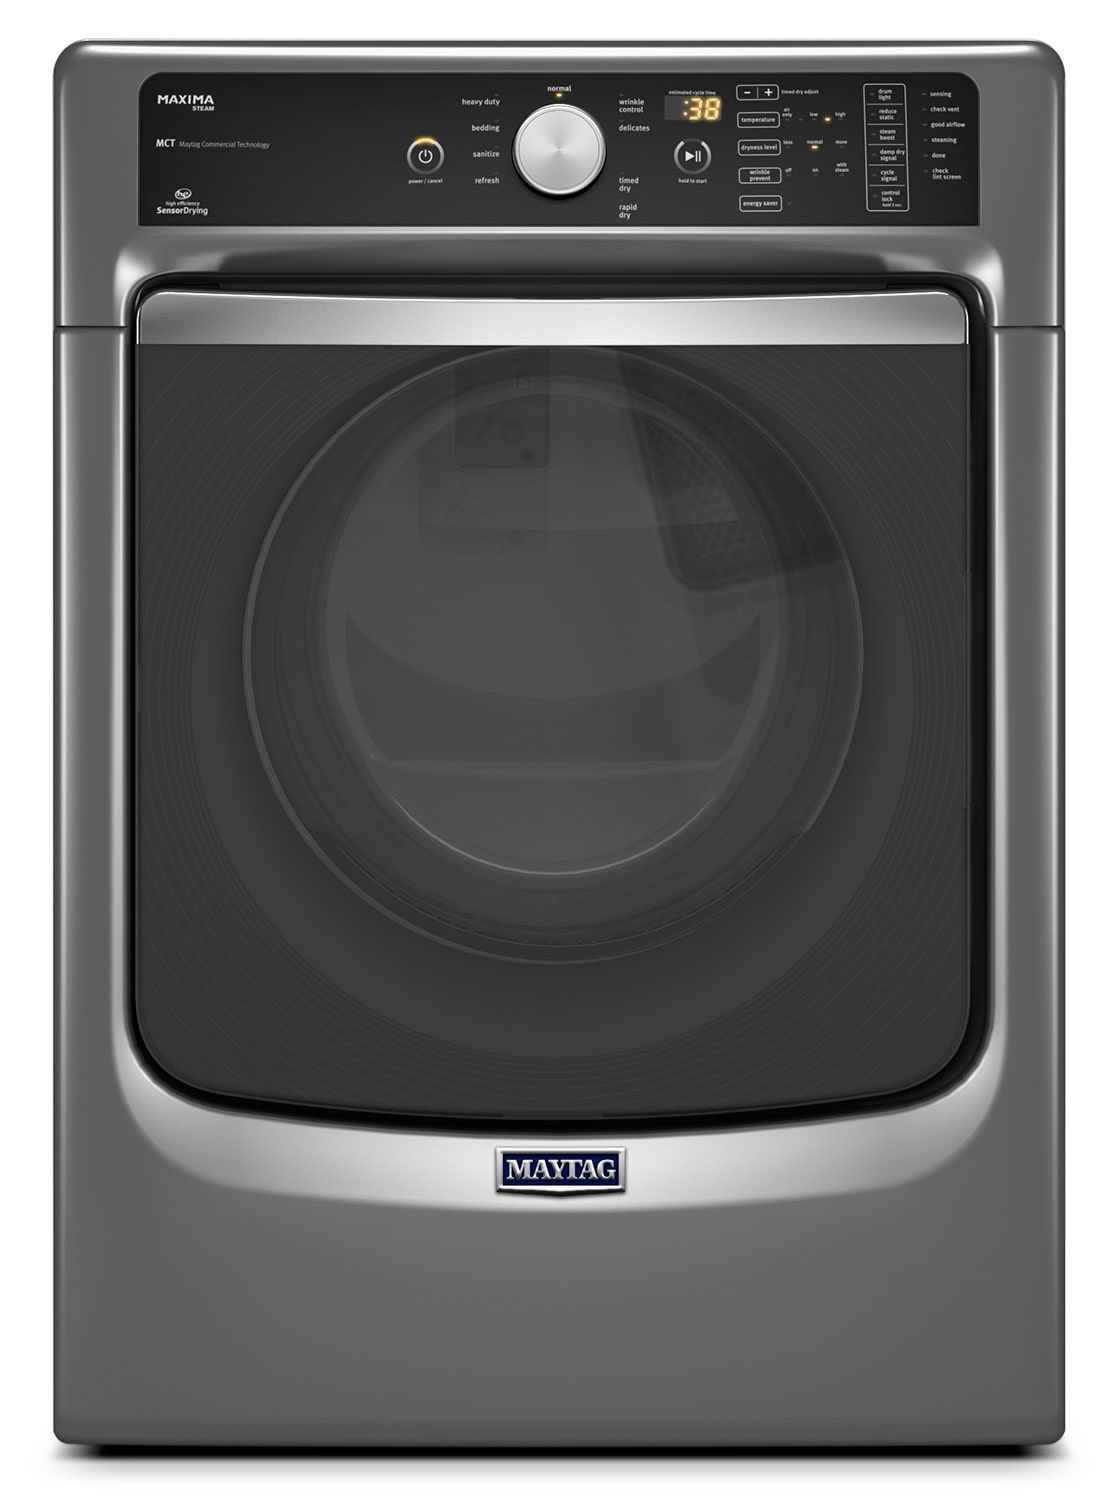 Washers and Dryers - Maytag Metallic Slate Gas Dryer (7.3 Cu. Ft.) - MGD7100DC